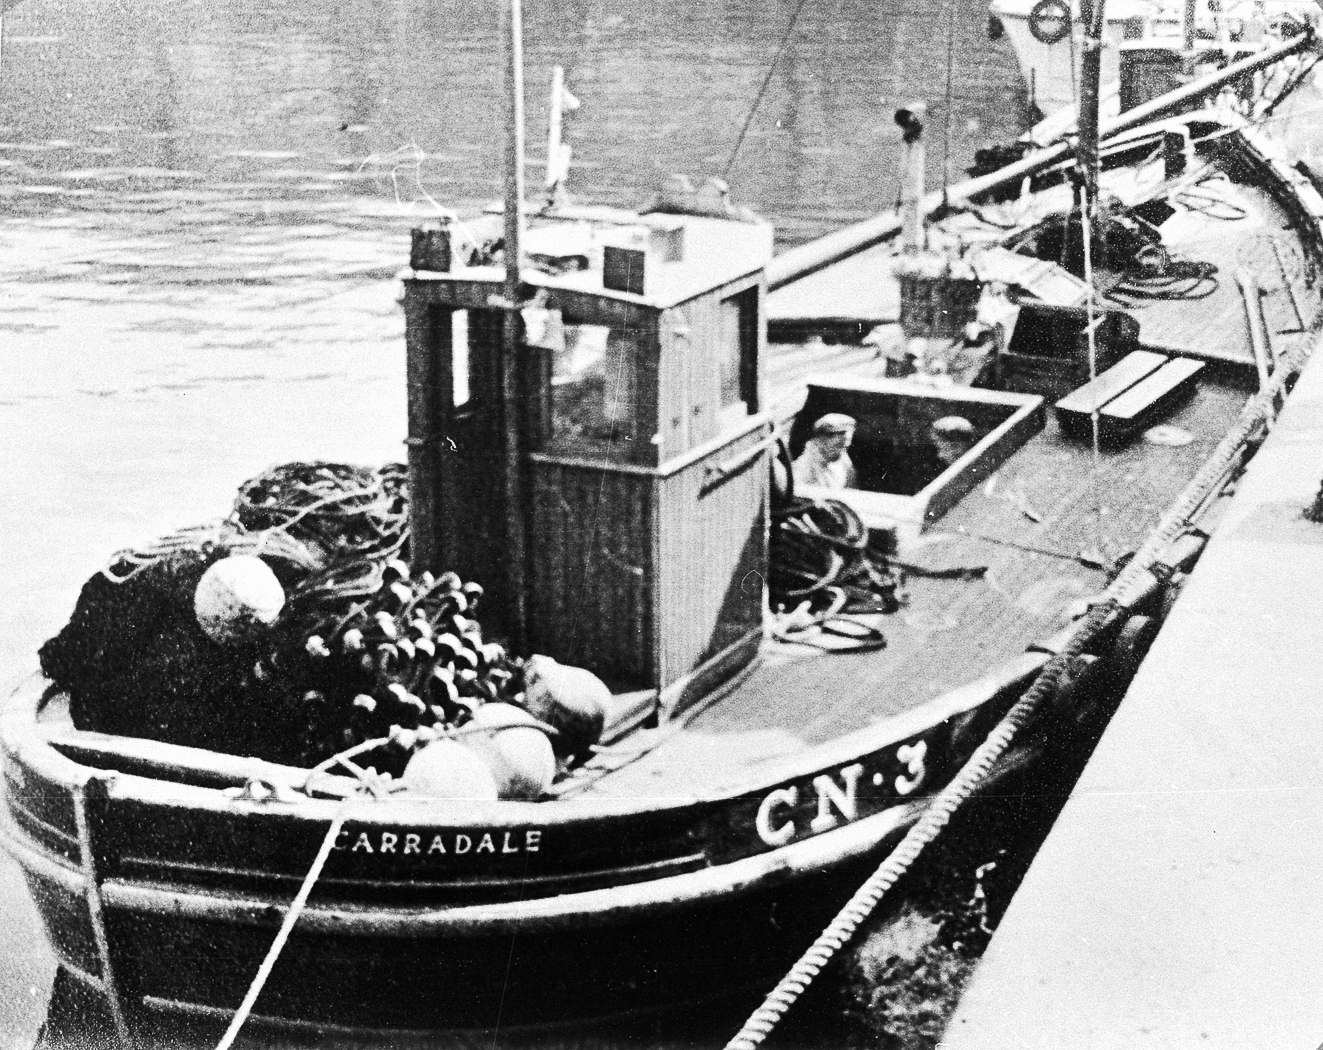 'Watercress', CN3 in harbour, Campbeltown. Possibly pictured - Robert McDougall, Campbeltown